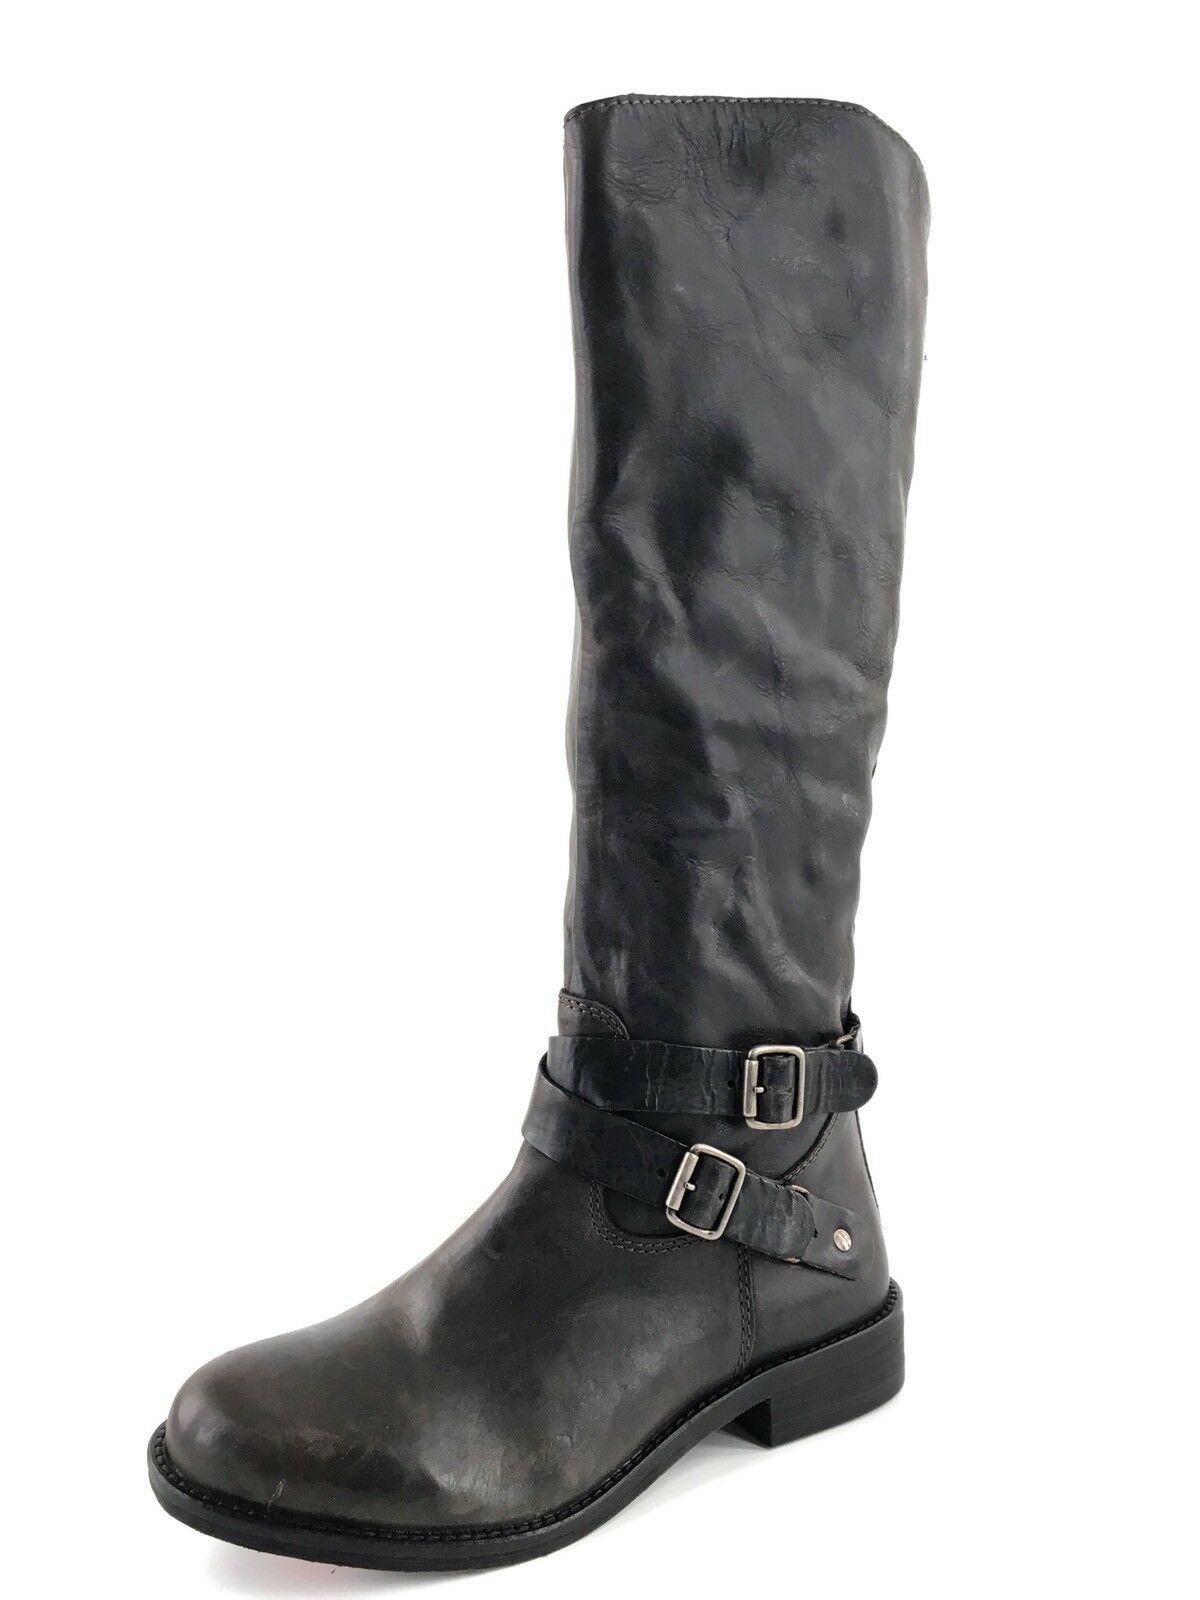 New Hinge Women's Black Distressed Leather Knee High Riding Boots Size 6.5 M